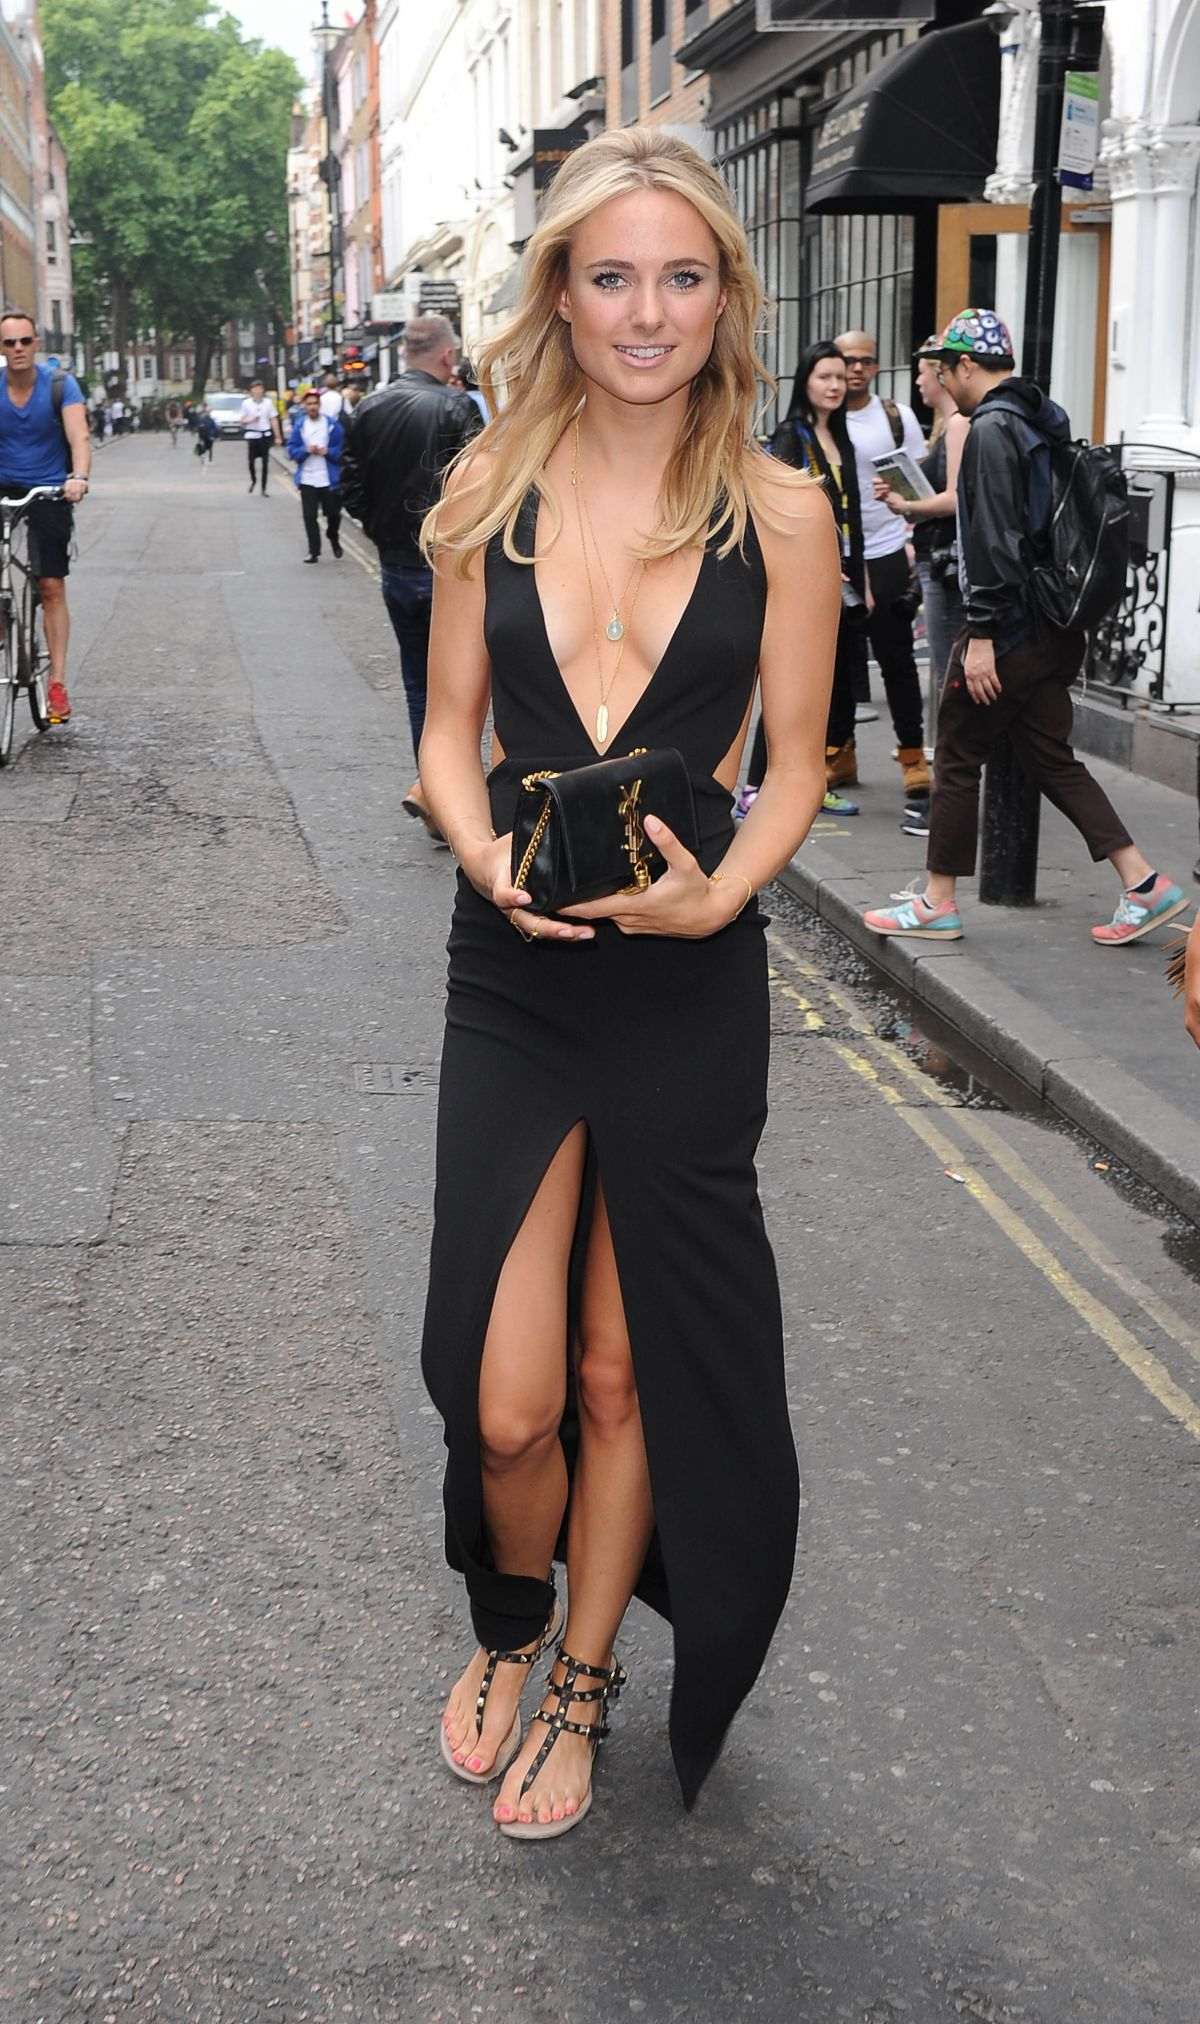 KIMBERLEY GARNER Arrives at a Fashion Show in London 06/12/2015